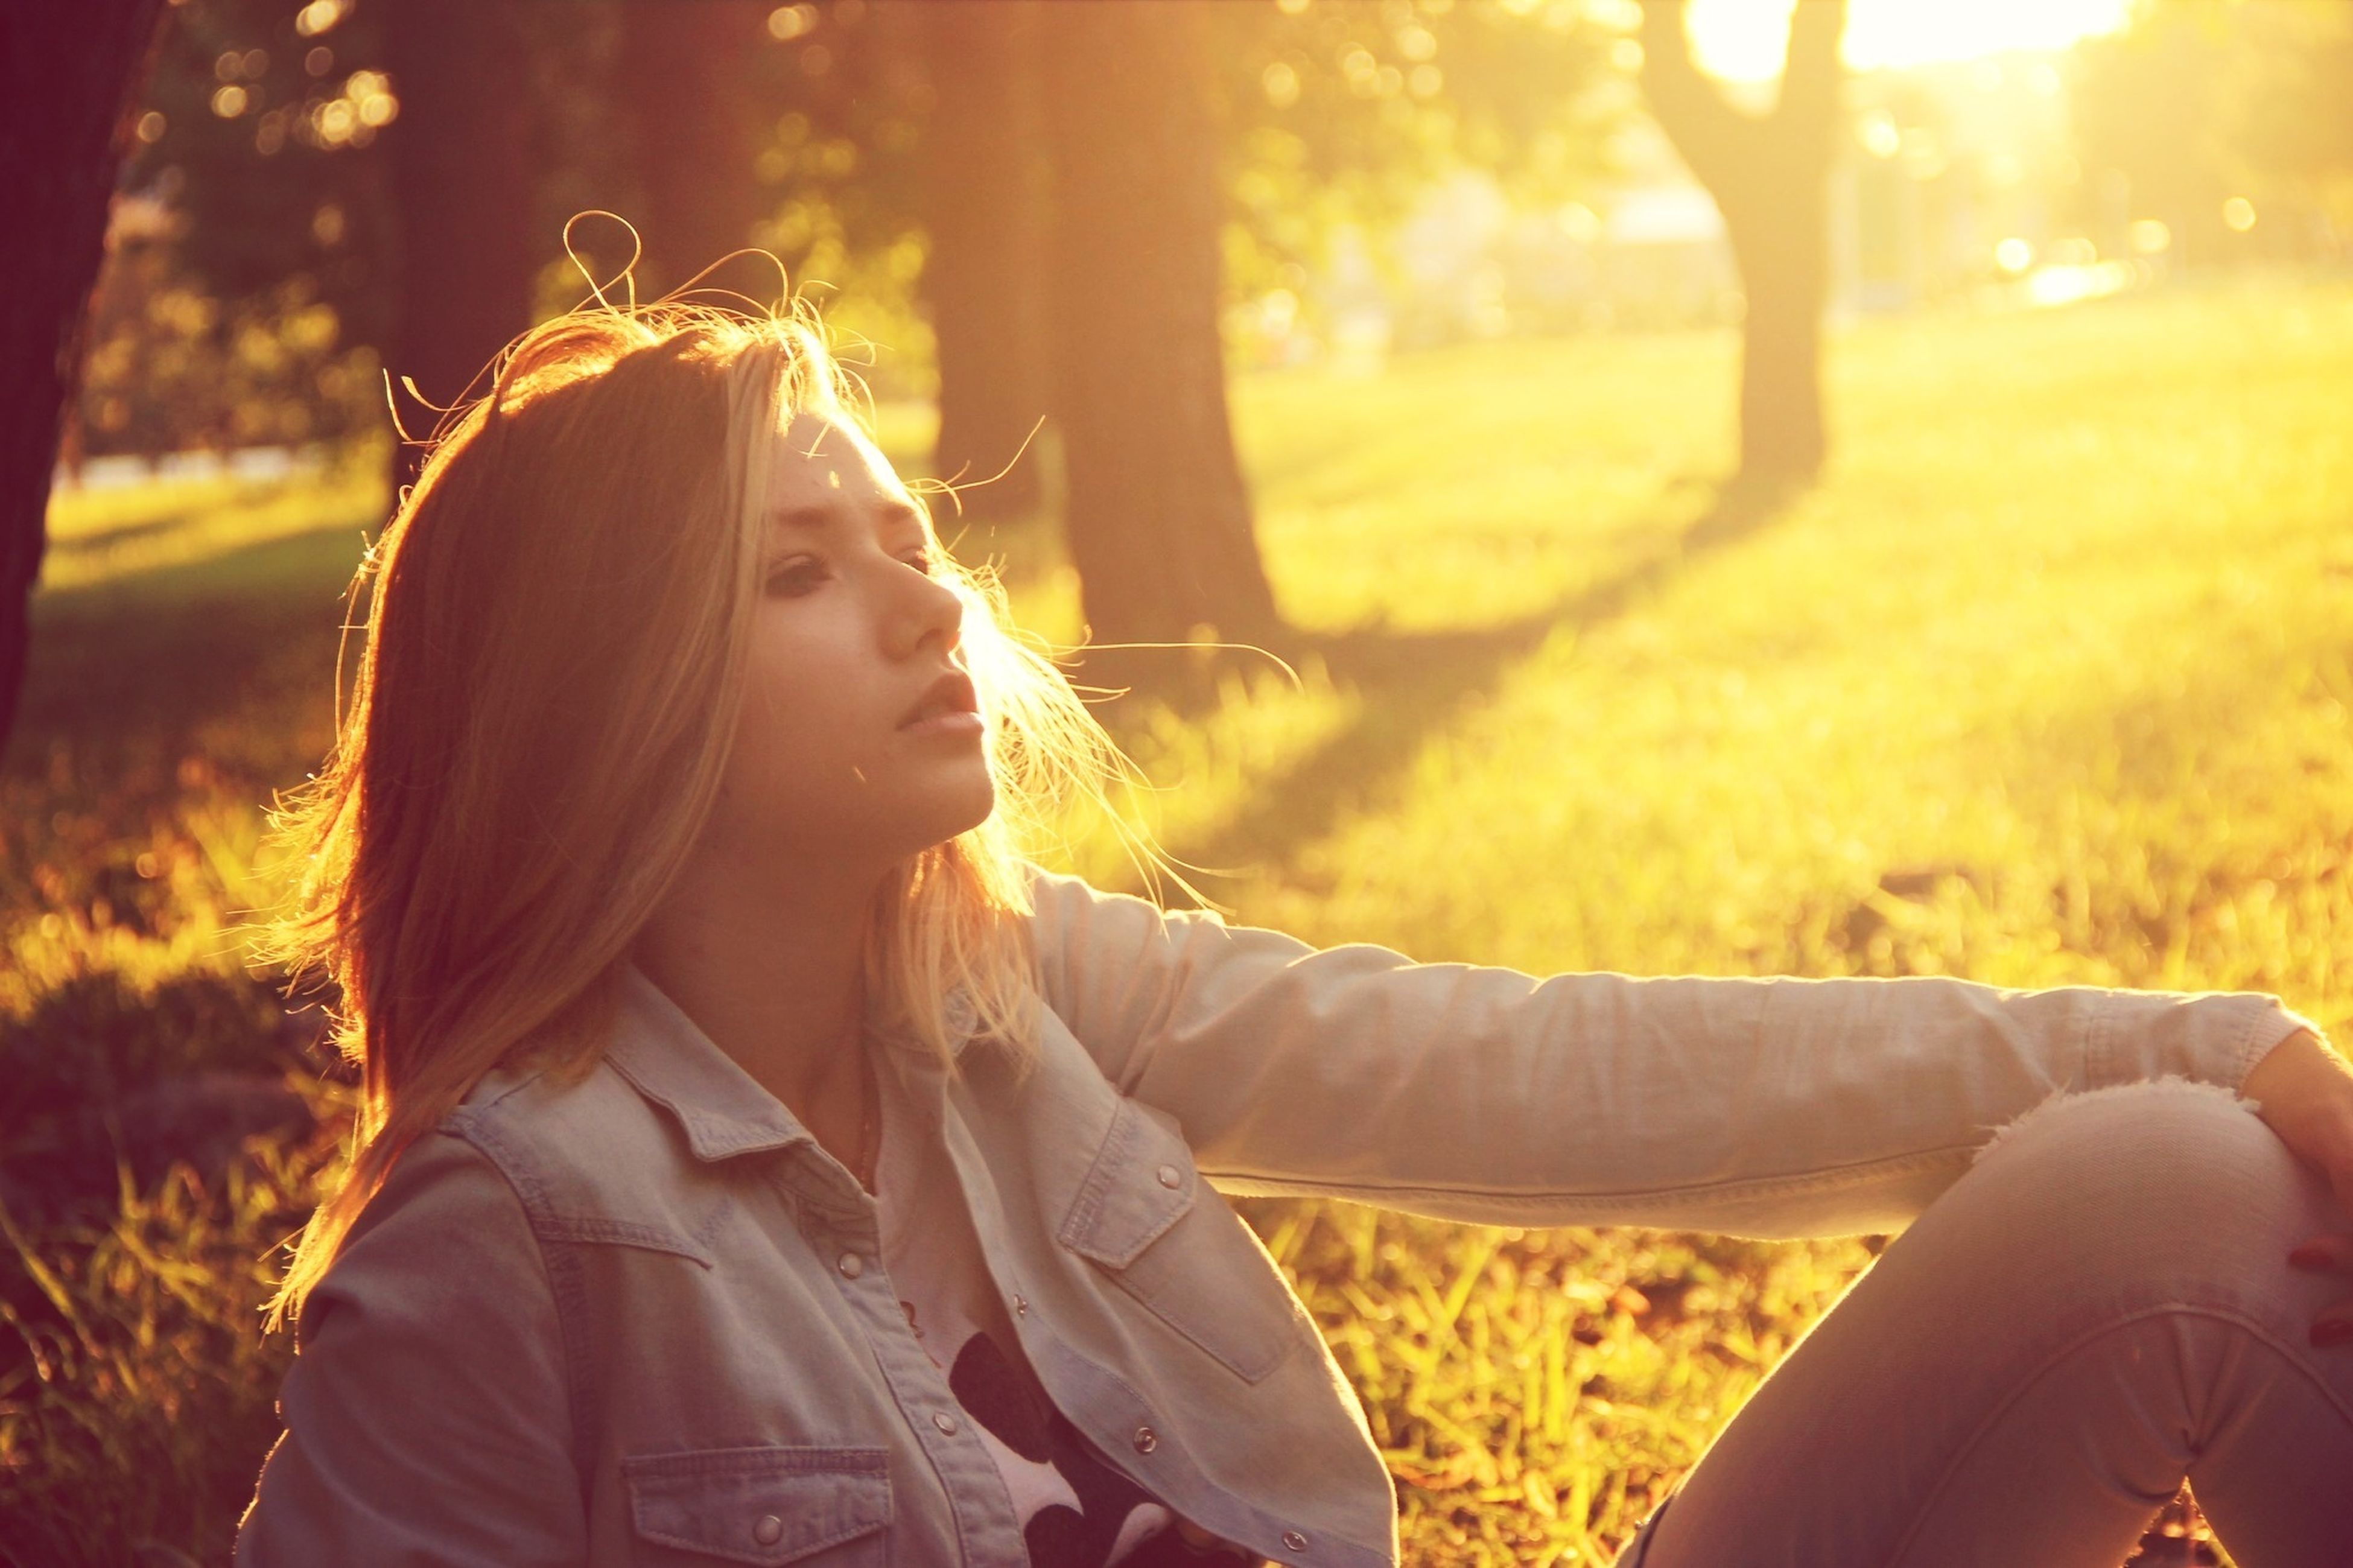 lifestyles, leisure activity, focus on foreground, tree, casual clothing, headshot, person, young adult, young women, long hair, sunlight, field, rear view, nature, park - man made space, outdoors, standing